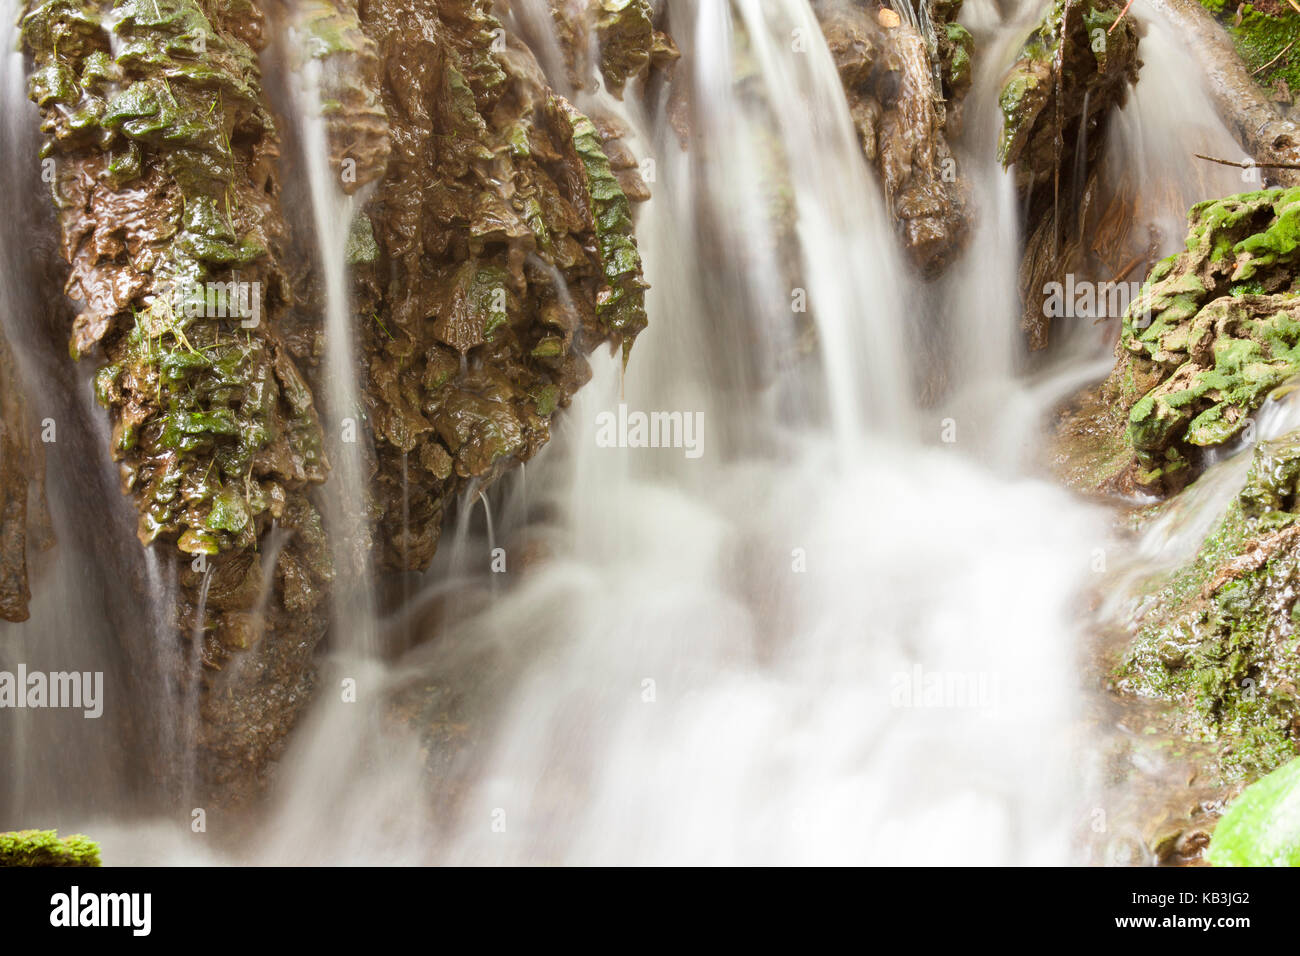 Stream blurred water in small waterfall - Stock Image